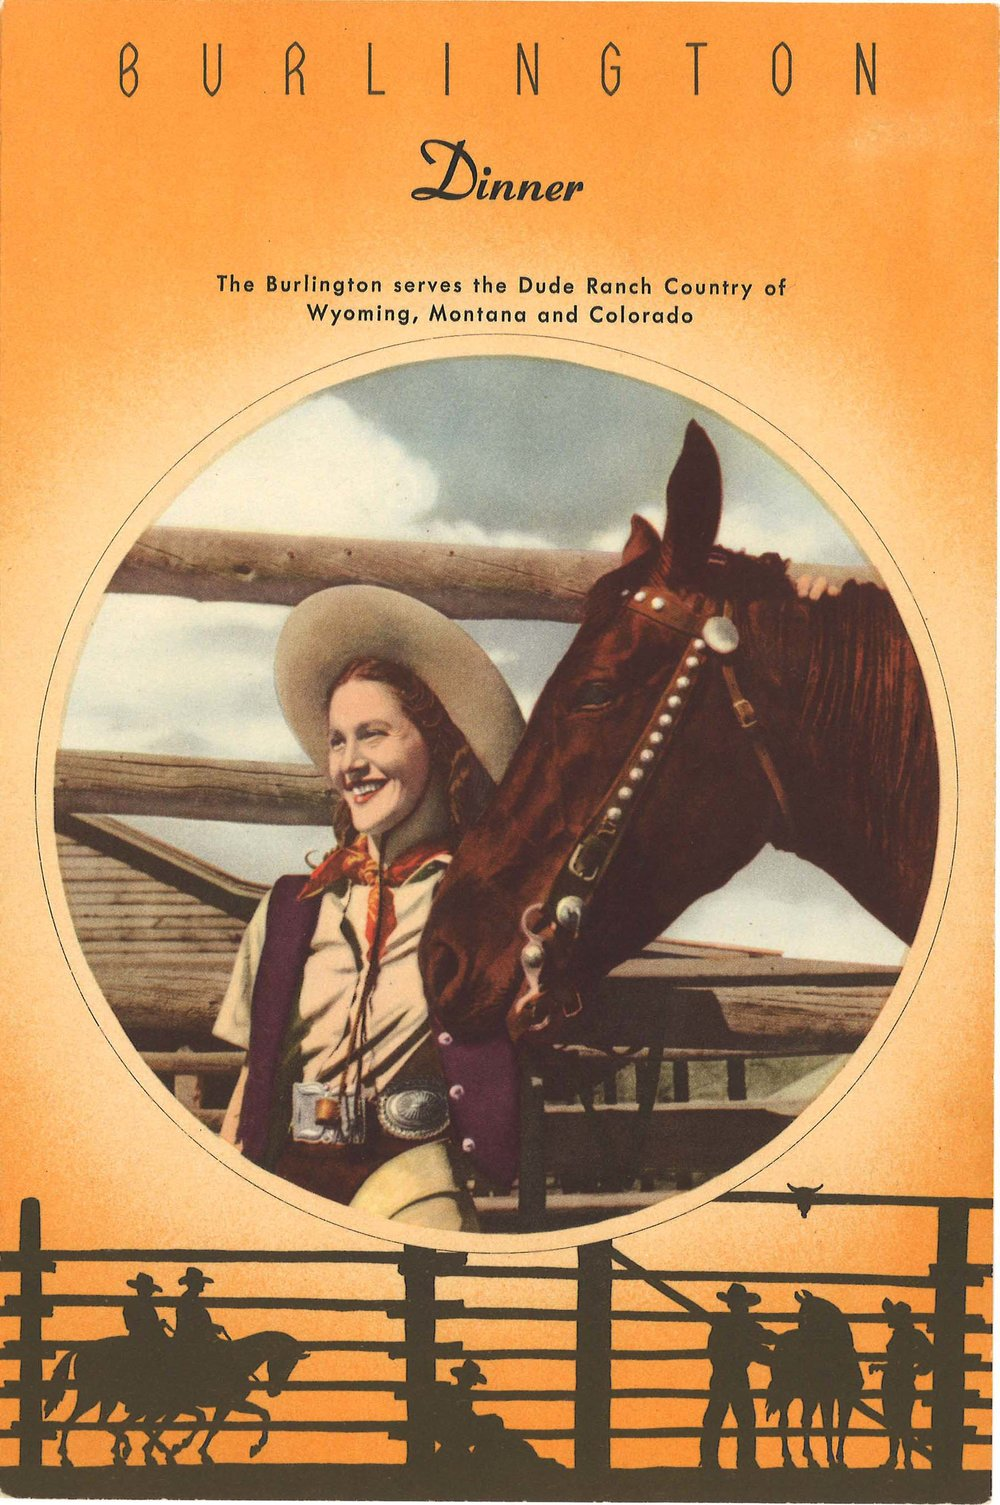 Burlington Dude Ranch Dinner Menu1.jpg